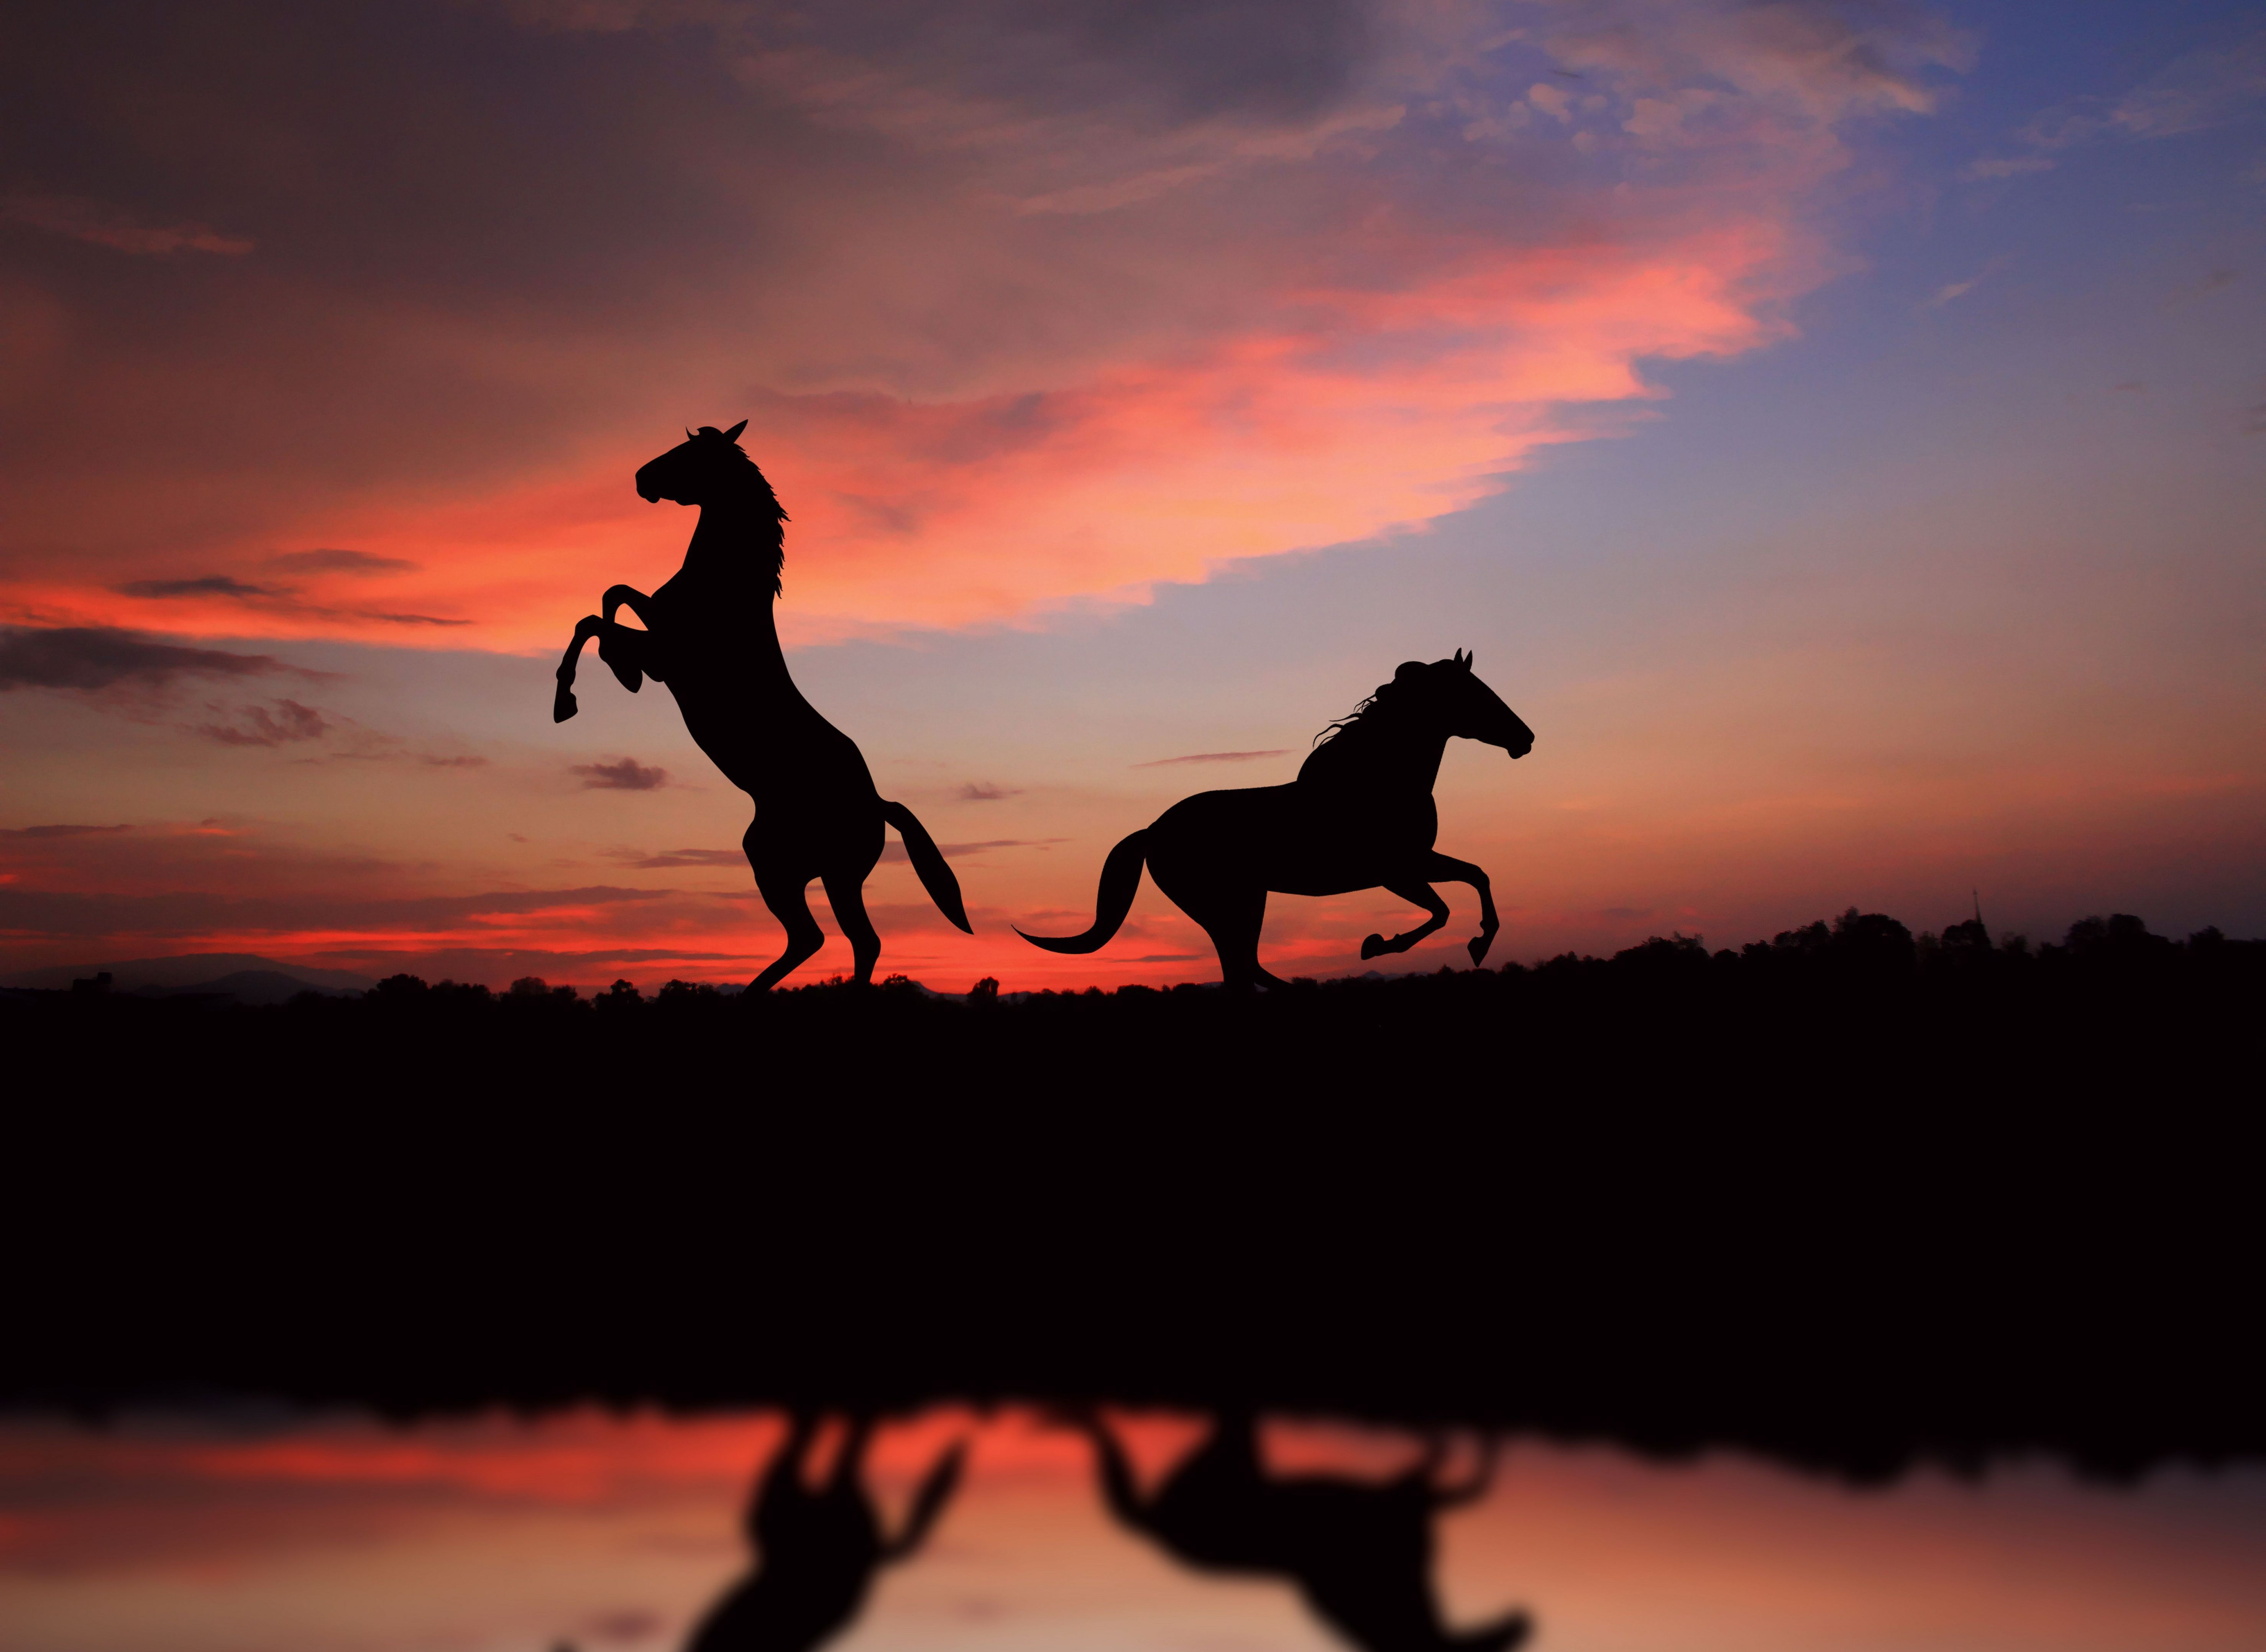 Wild horses on the beach at sunset 01 horses pinterest horse wild horses on the beach at sunset 01 sciox Choice Image